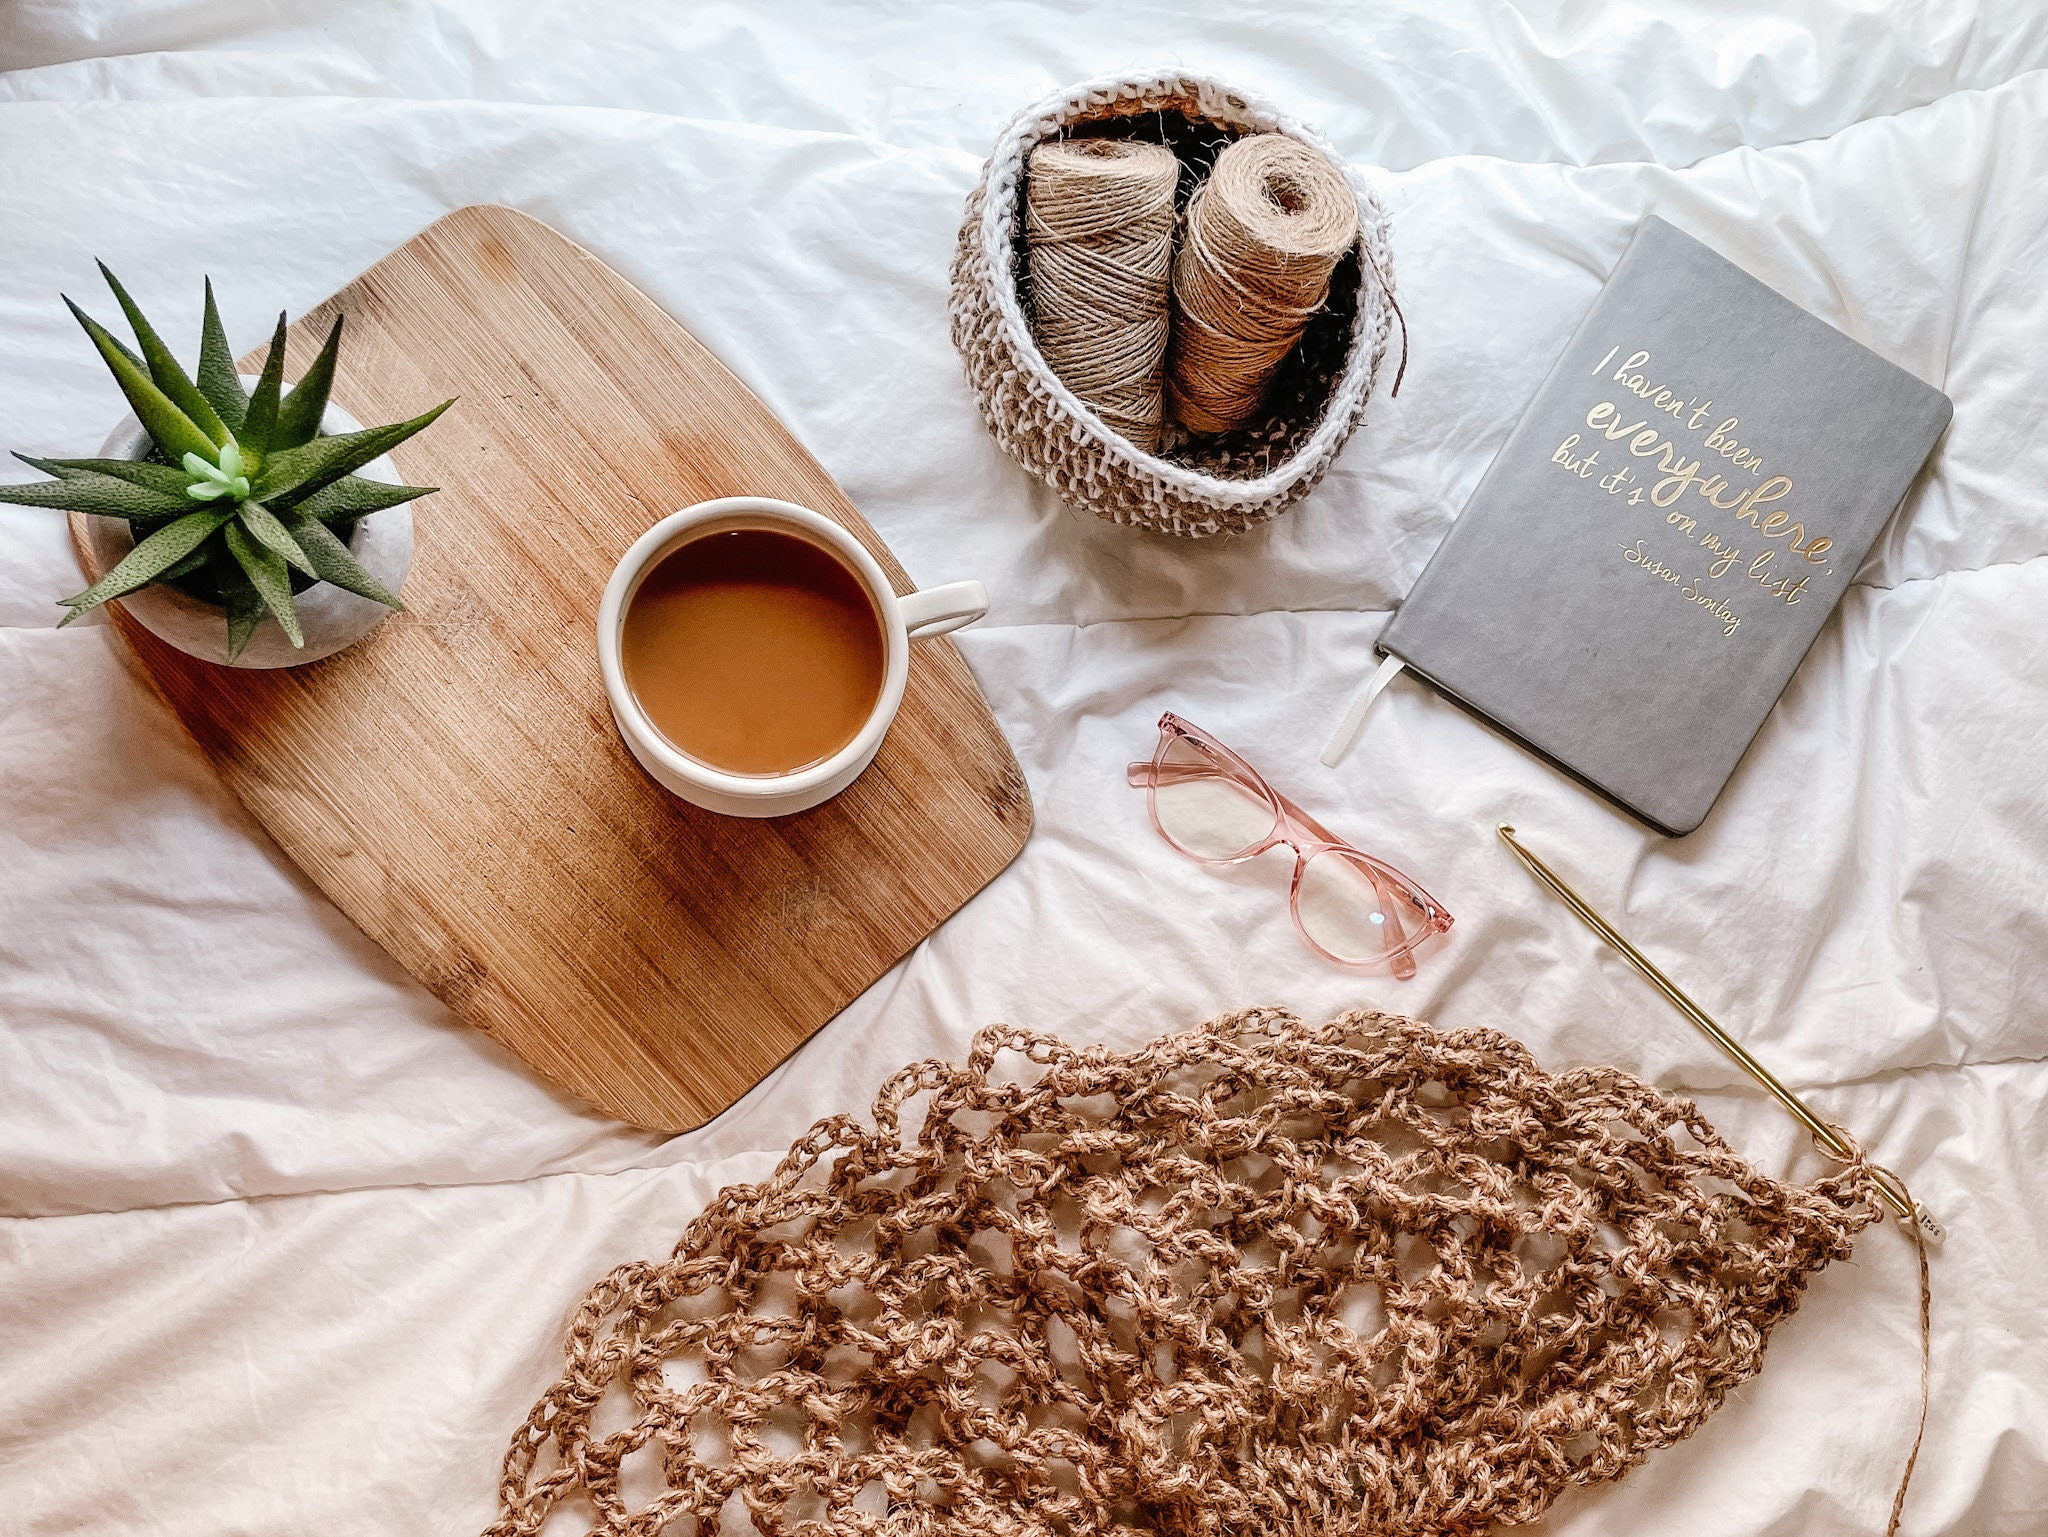 Crochet on a bed